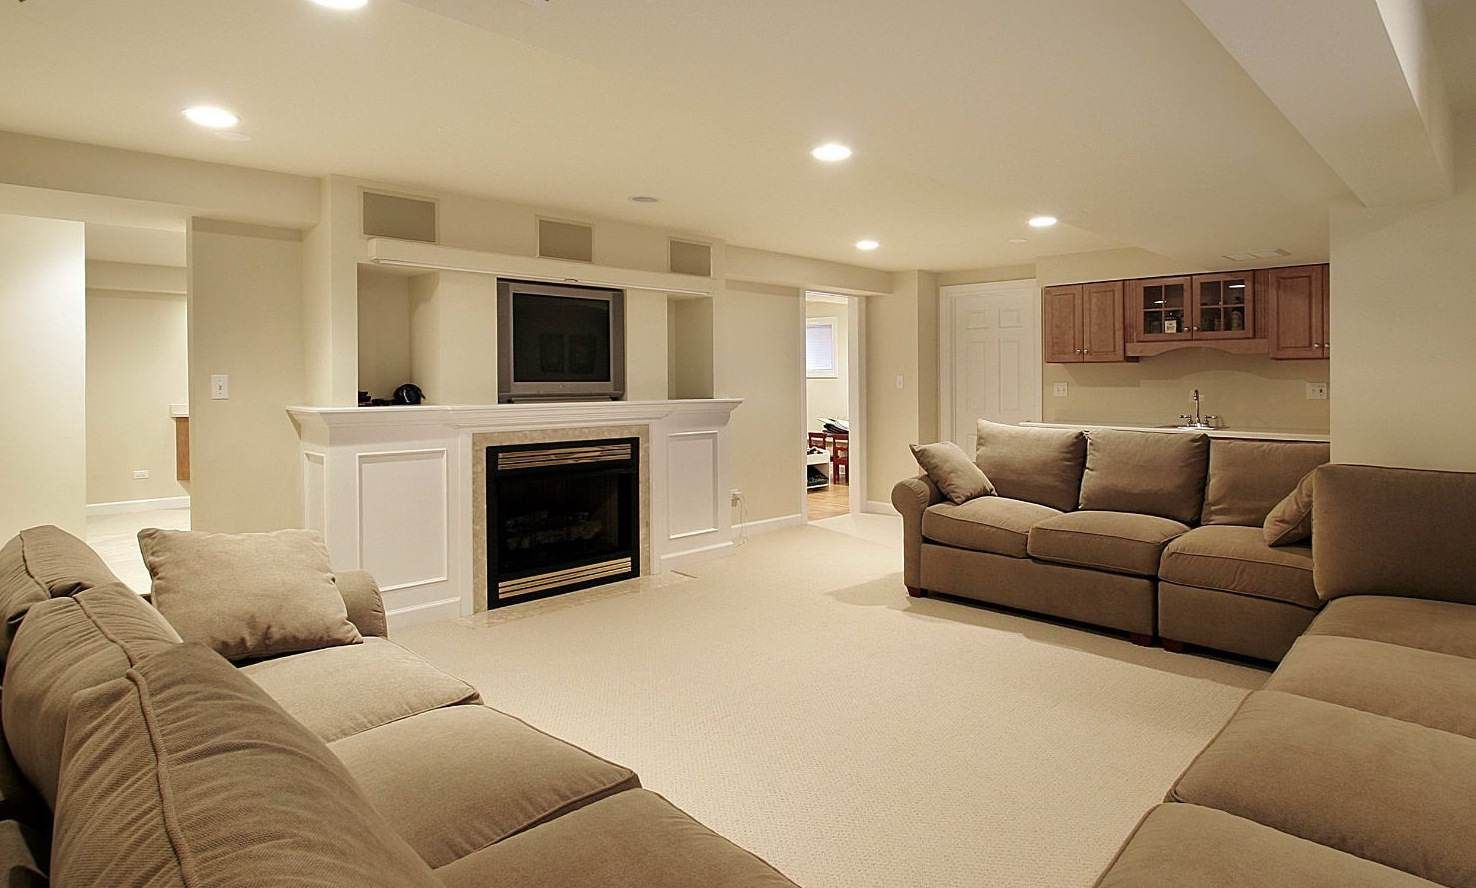 Better homes and gardens living room ideas - Basement Color Schemes Better Homes And Gardens